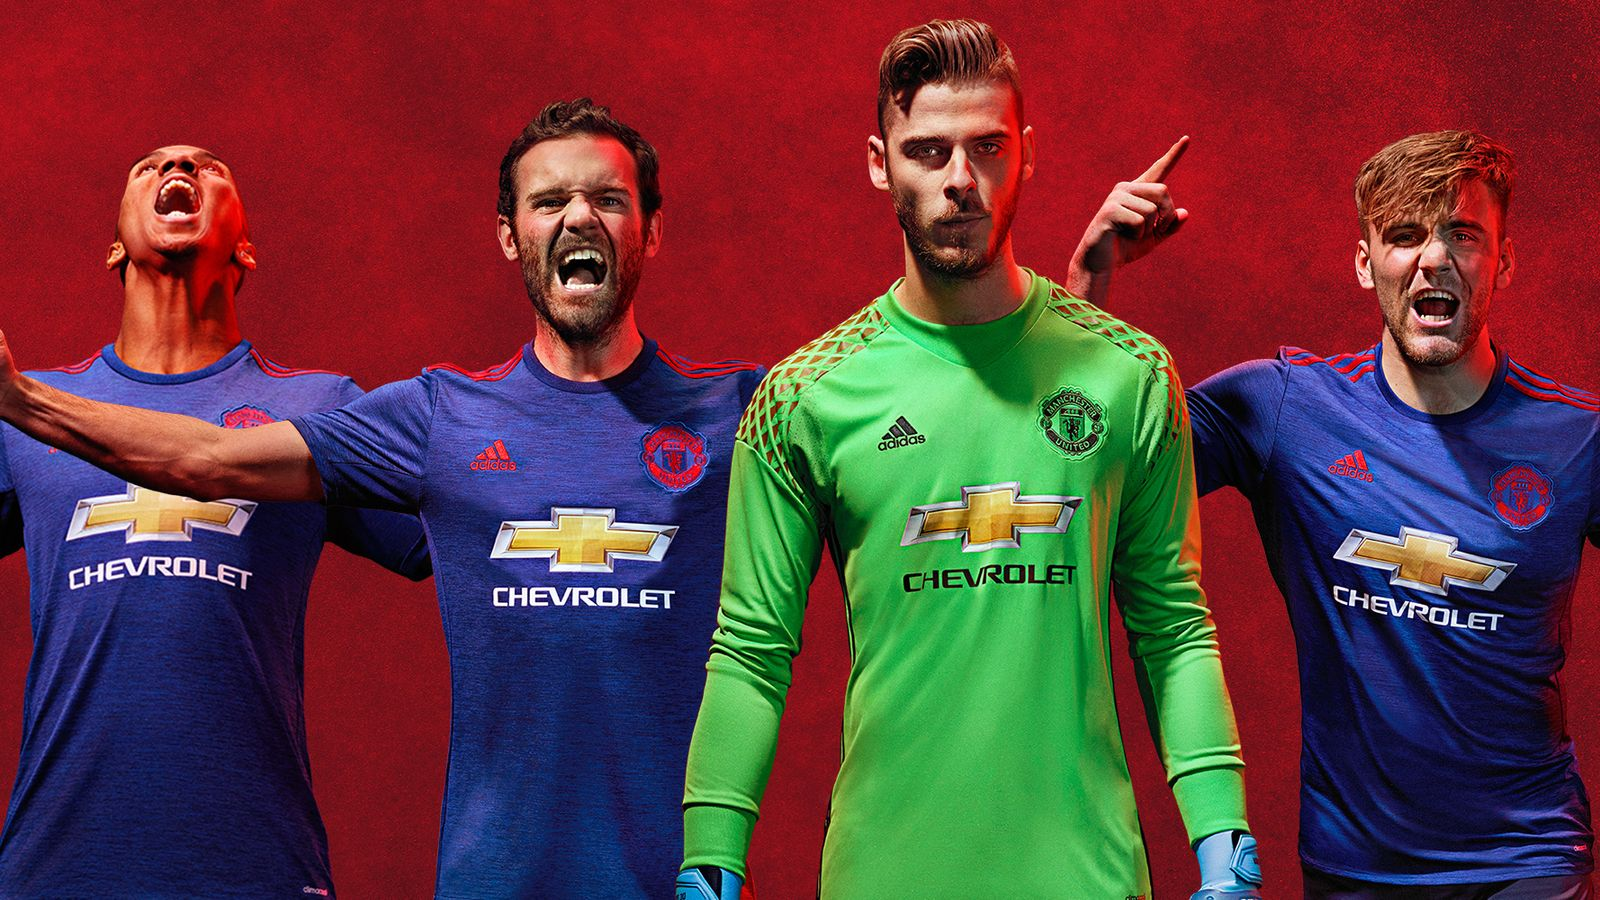 ad92f408e Manchester United confirm away kit for new season